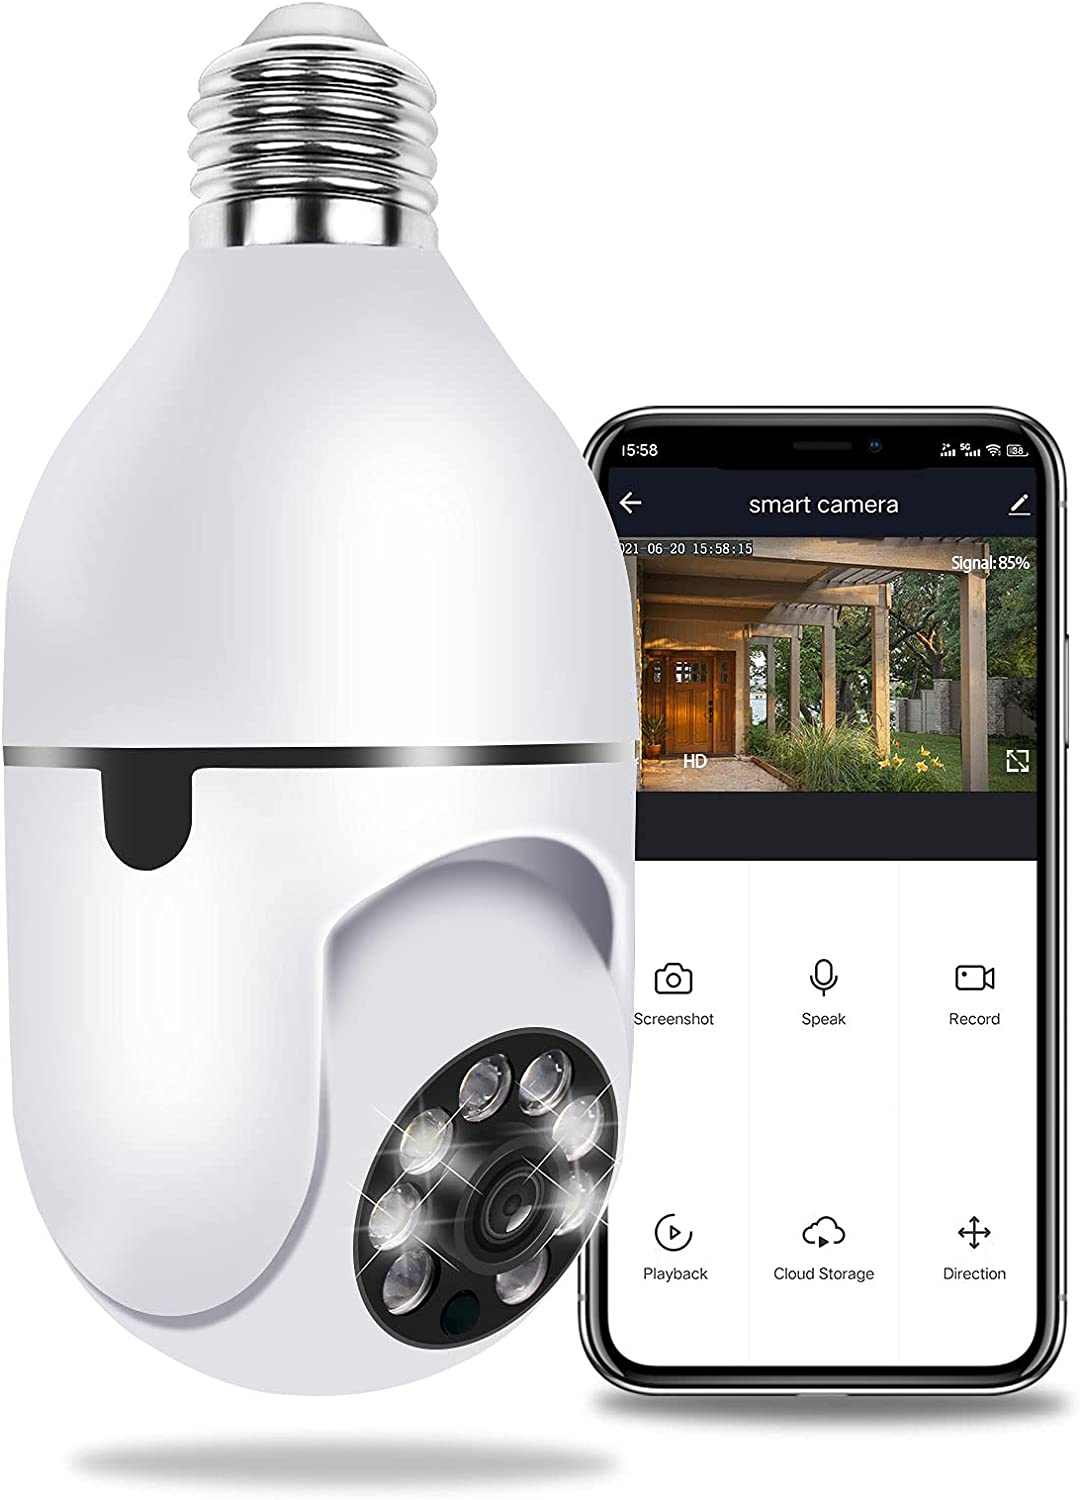 Pan Tilt Security Camera, Full-HD 1080P Wireless Wi-Fi IP Camera, Home Surveillance CCTV Cameras with Motion Detection Alarm/Night Vision/Remote Viewing